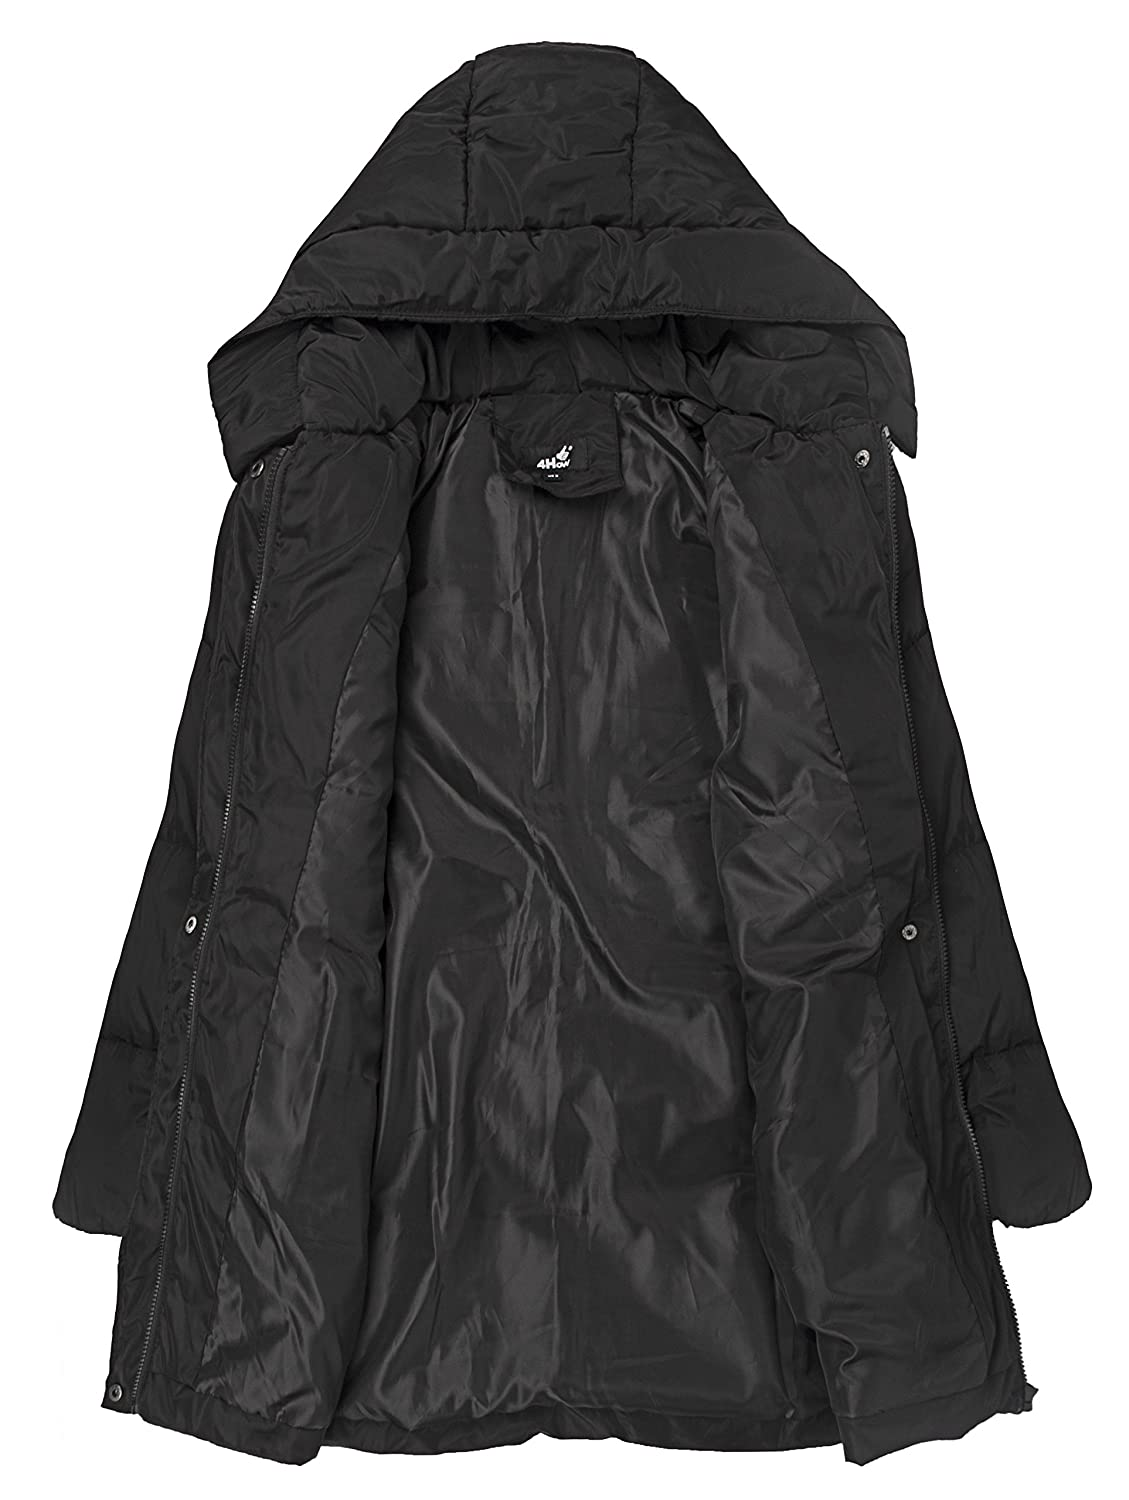 72fcf79efd Amazon.com  4HOW Women s Hooded Packable Puffer Down Jacket Winter Parka  Coat Black US Size 6  Clothing